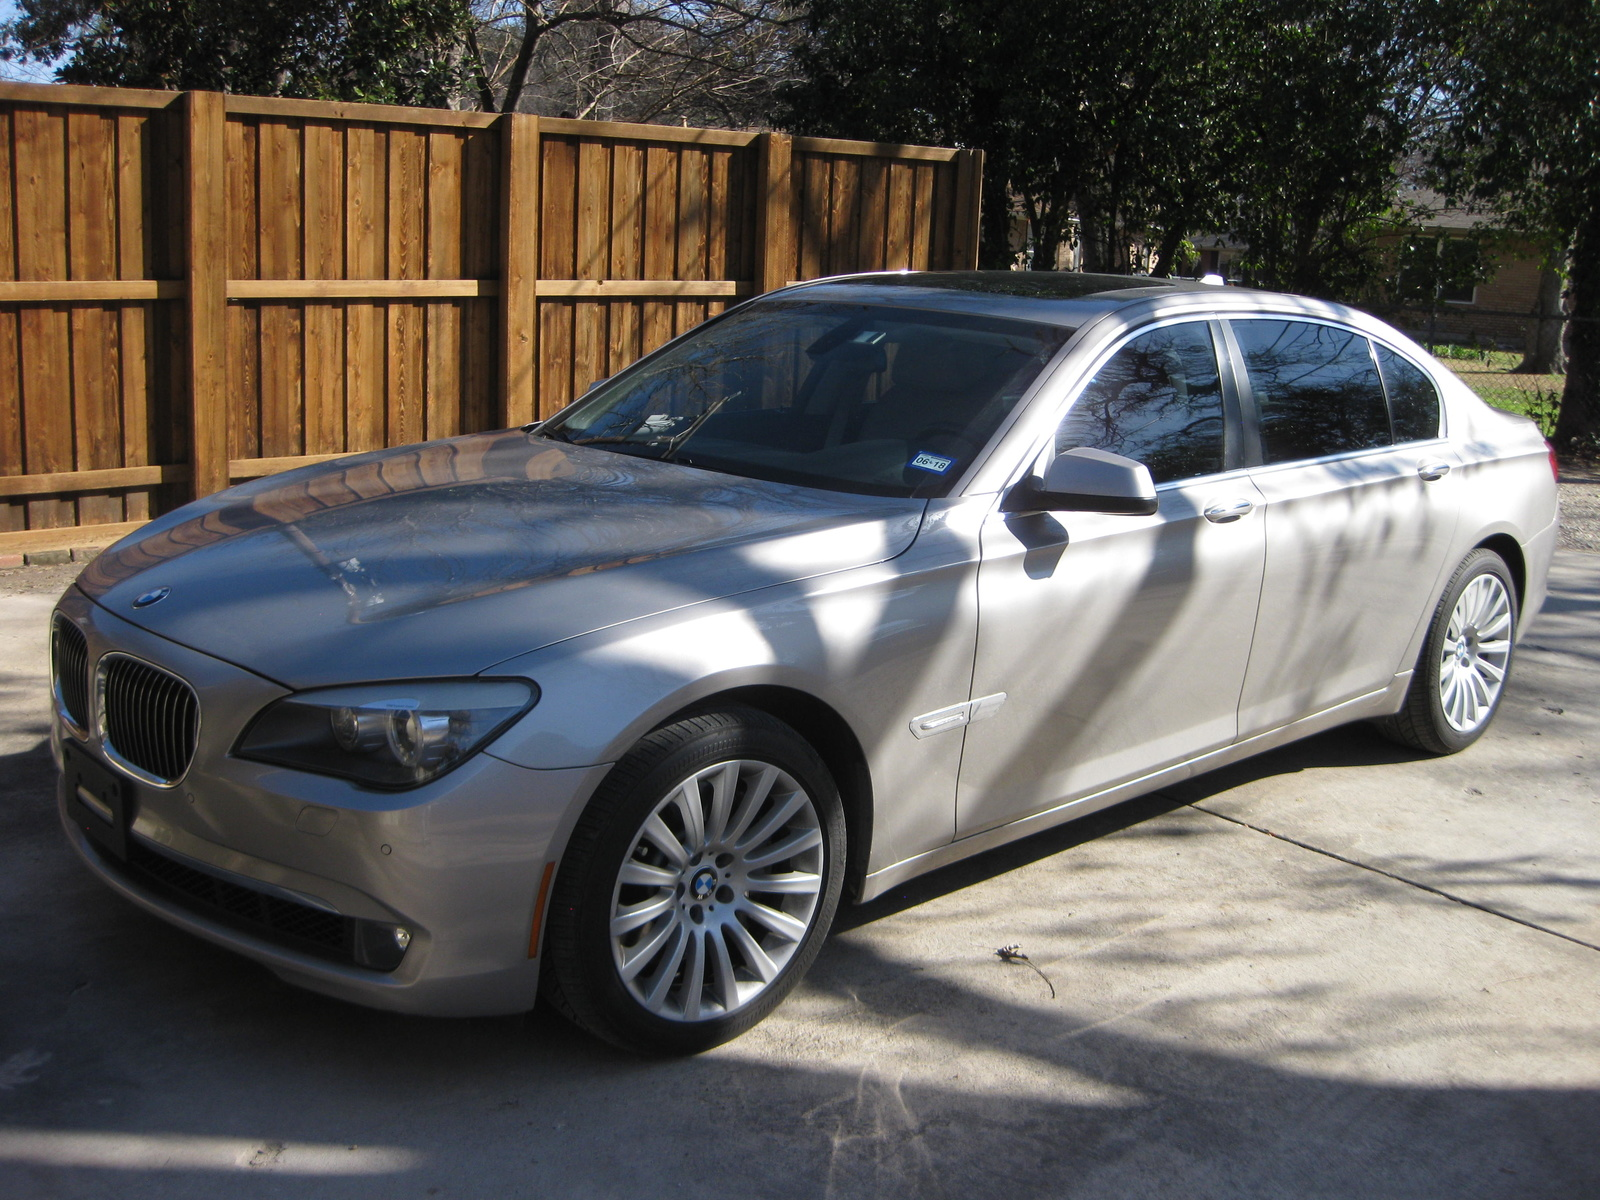 2012 BMW 7 Series - Overview - CarGurus